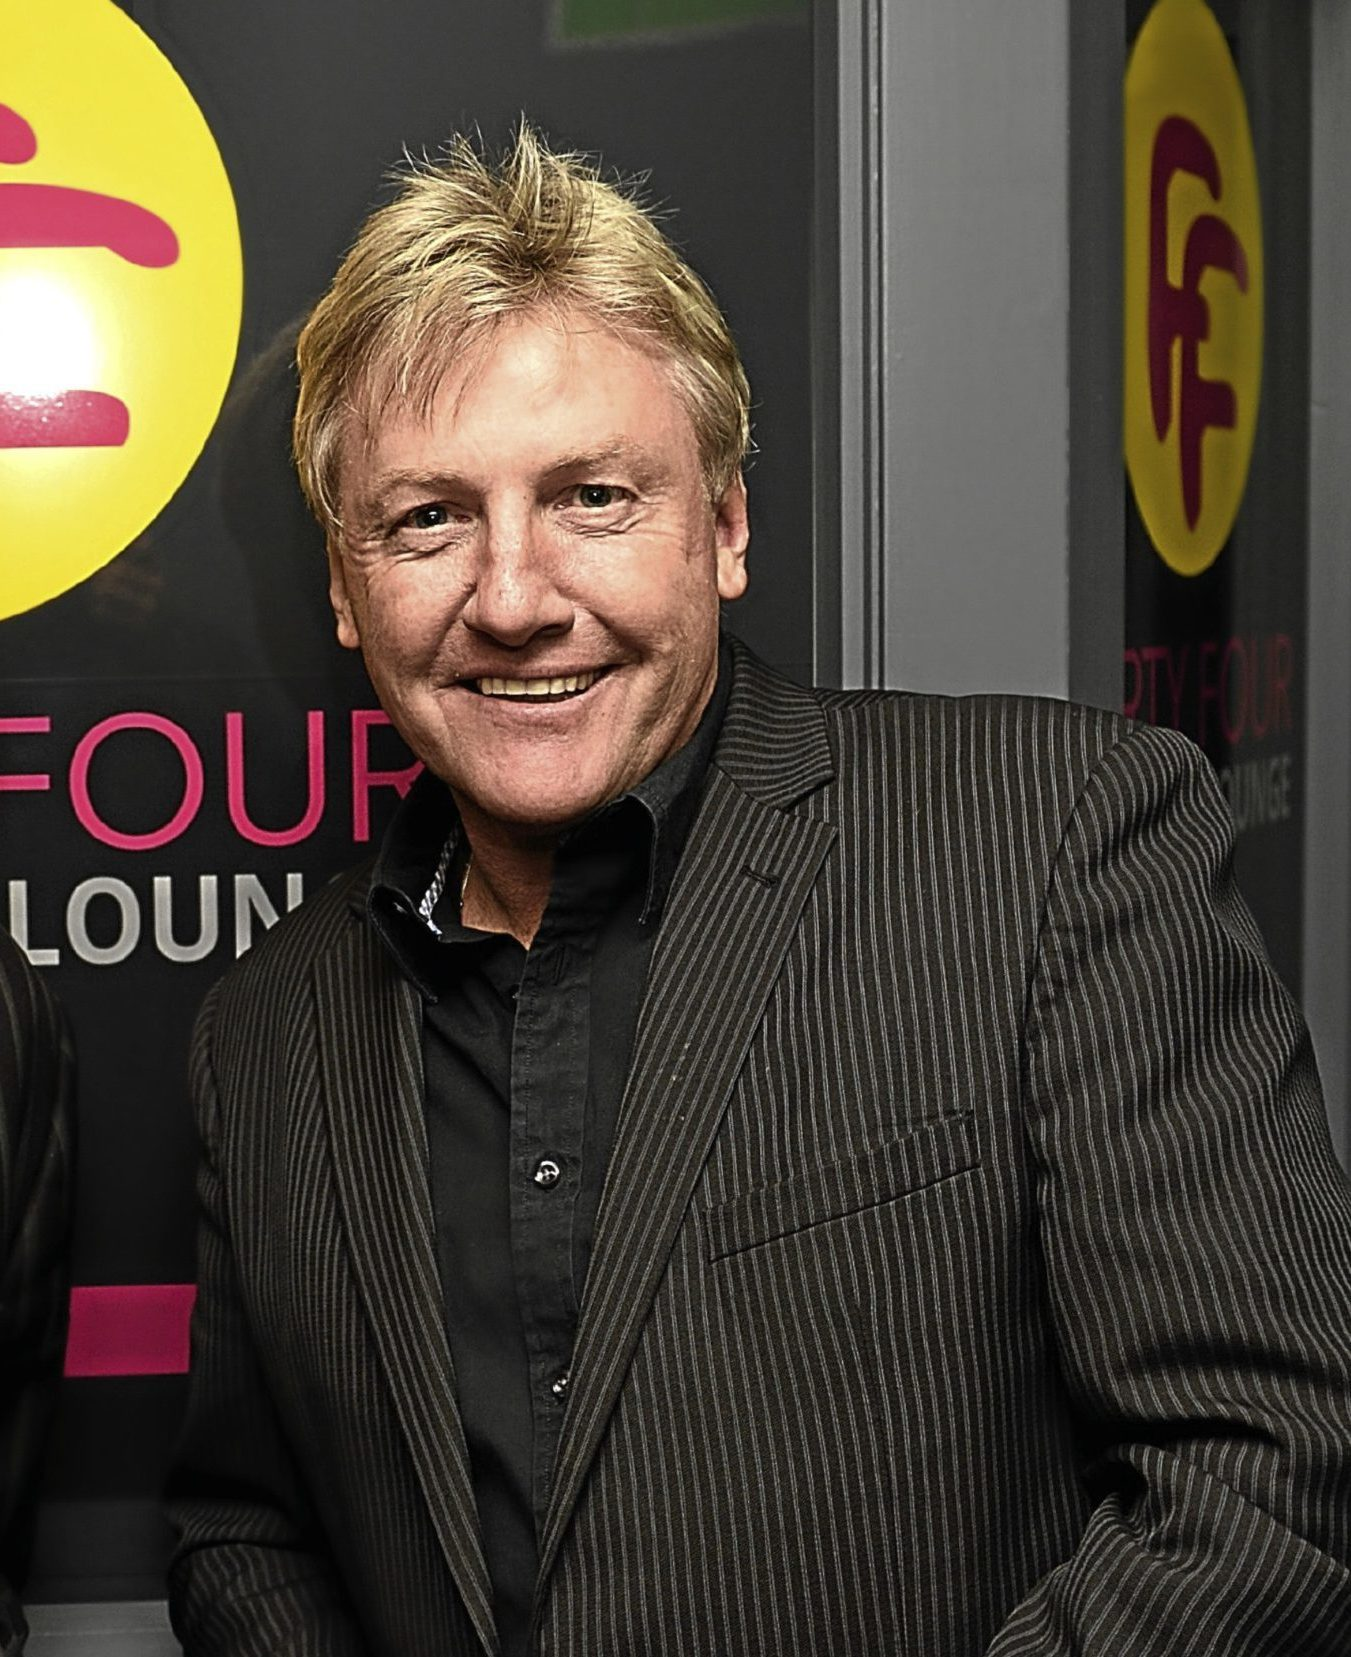 Frank McAvennie scored in a crucial World Cup qualifier for Scotland against Australia in 1985.